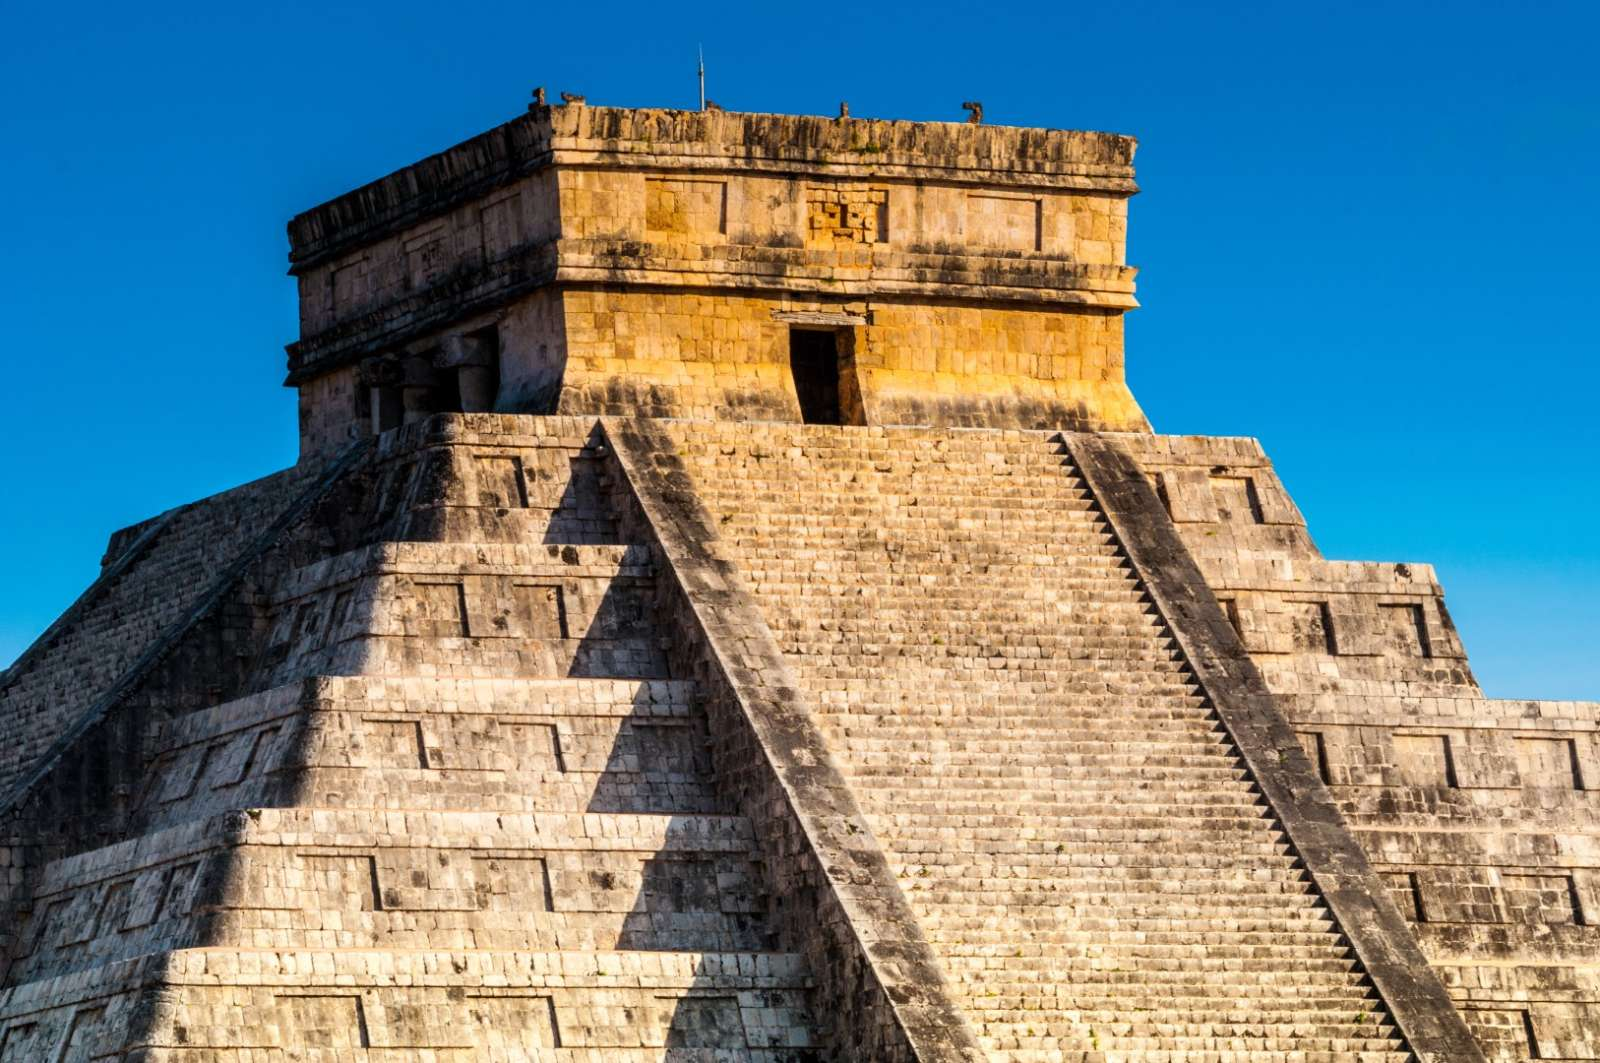 Top of pyramid at Chichen Itza